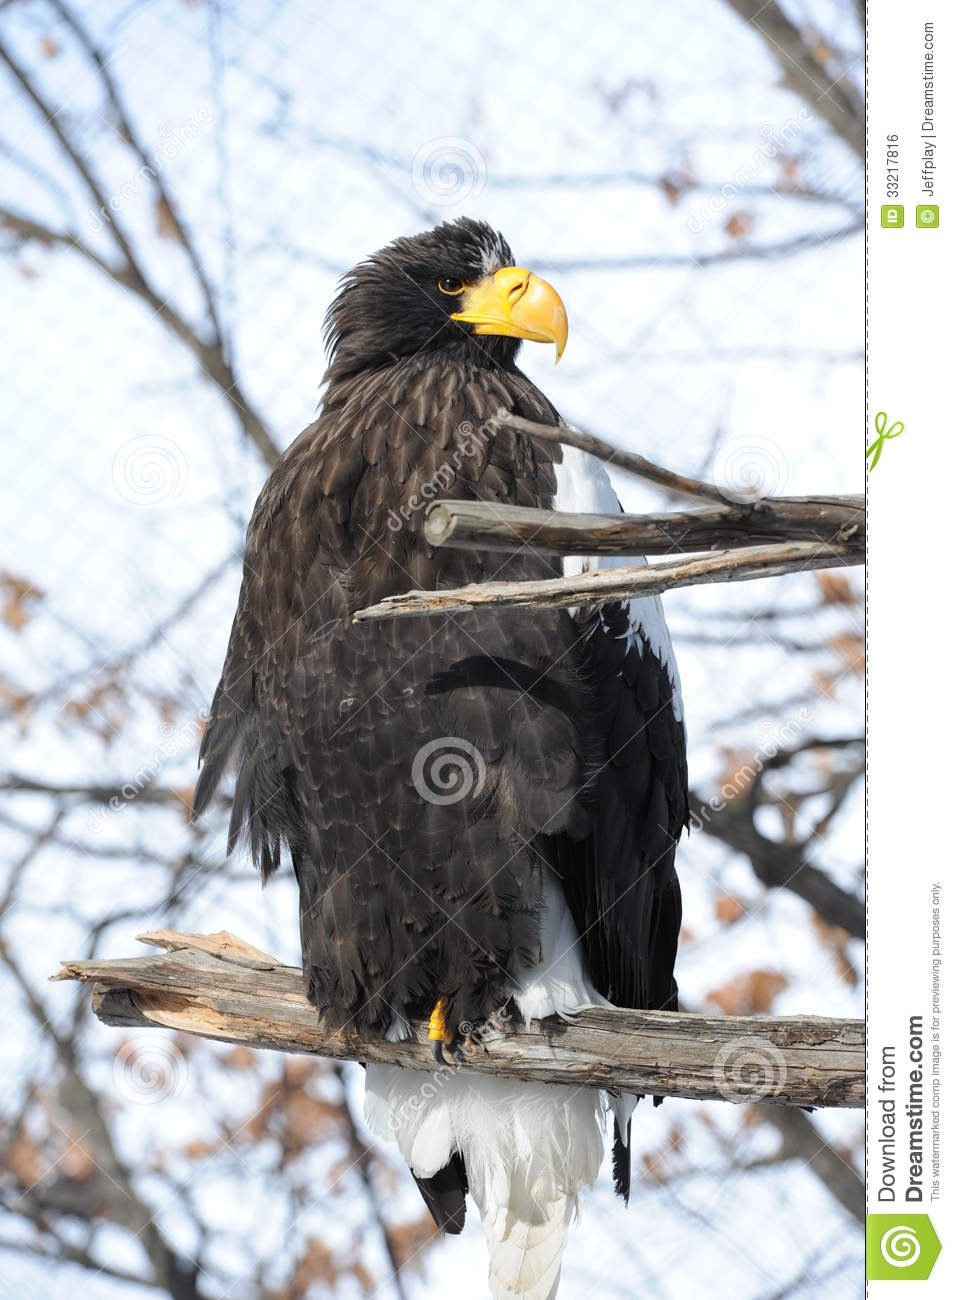 Fantastic Cadsoft Eagle Download Image - Everything You Need to Know ...